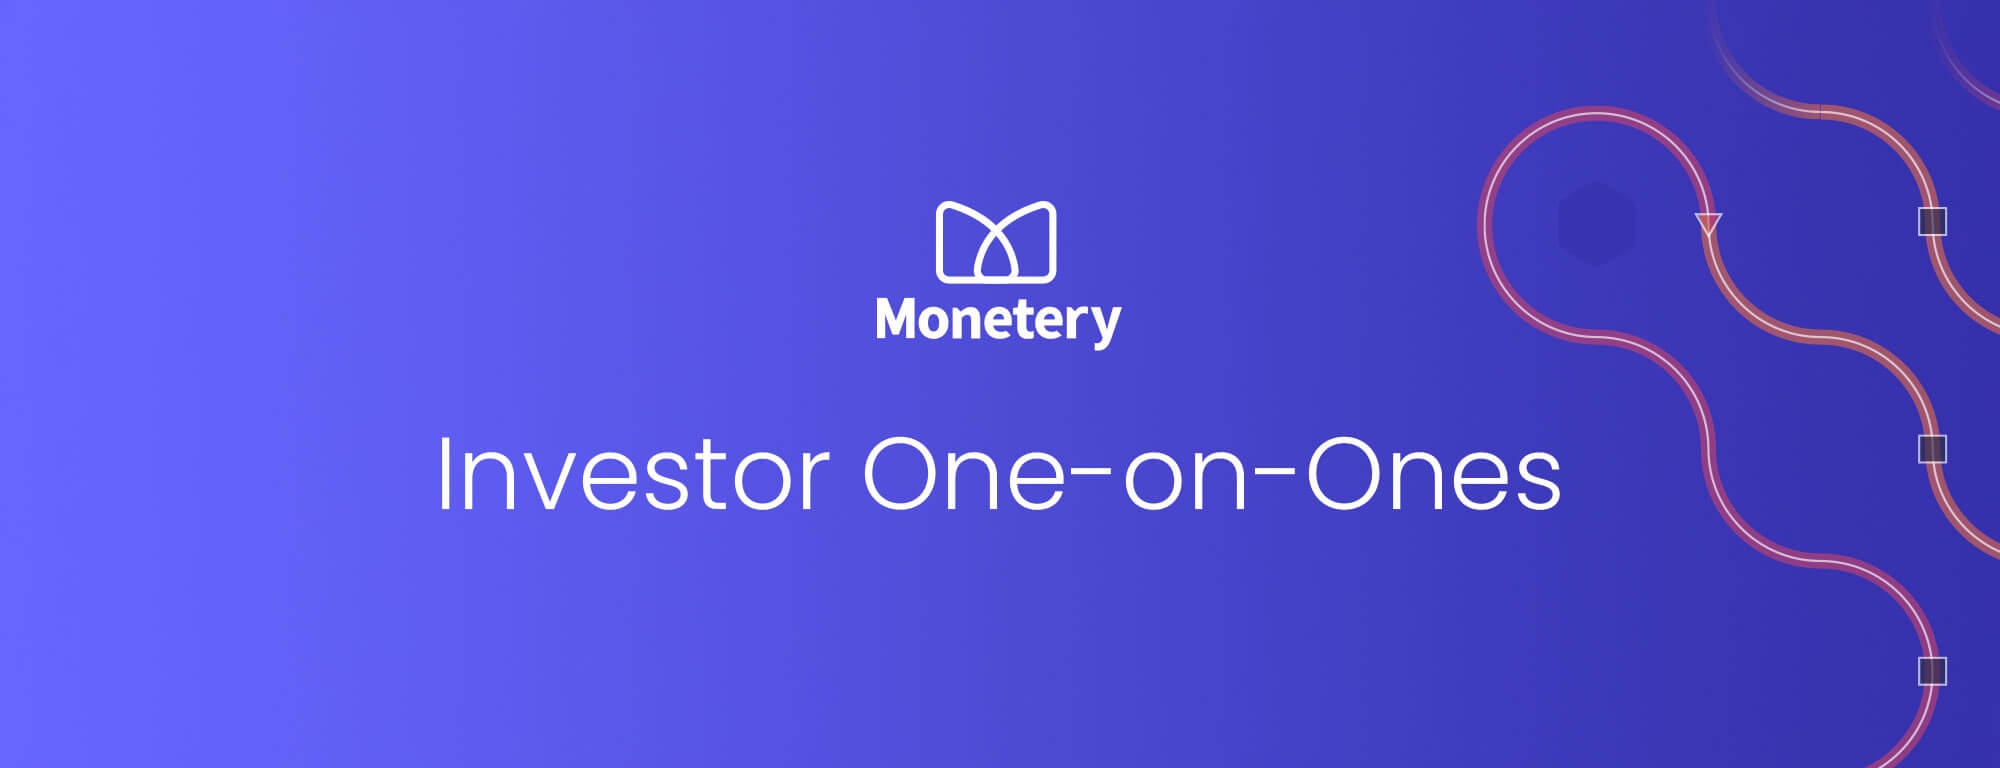 investor session monetery image